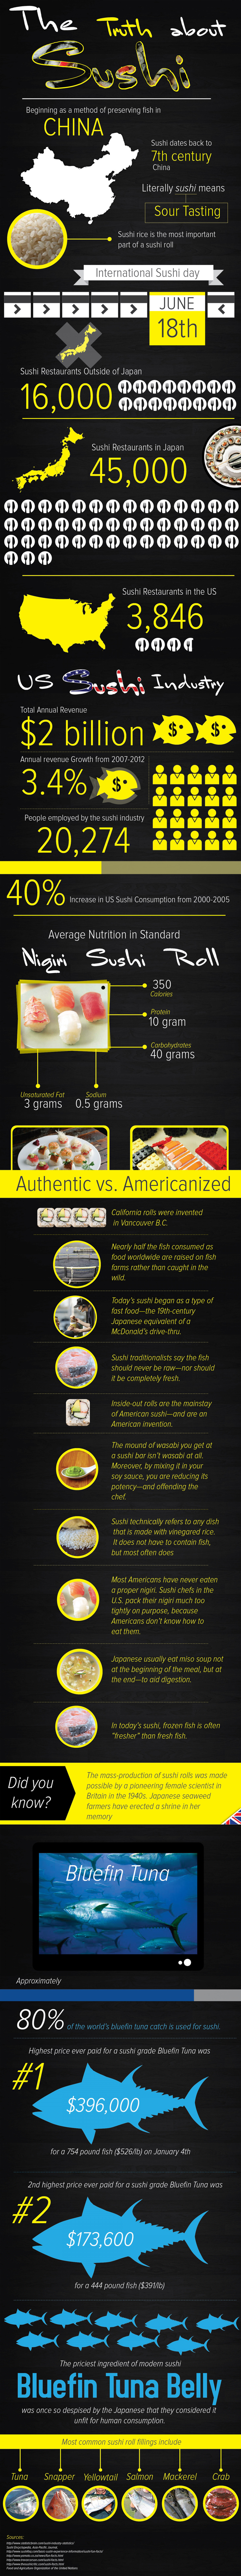 The Truth about Sushi Infographic